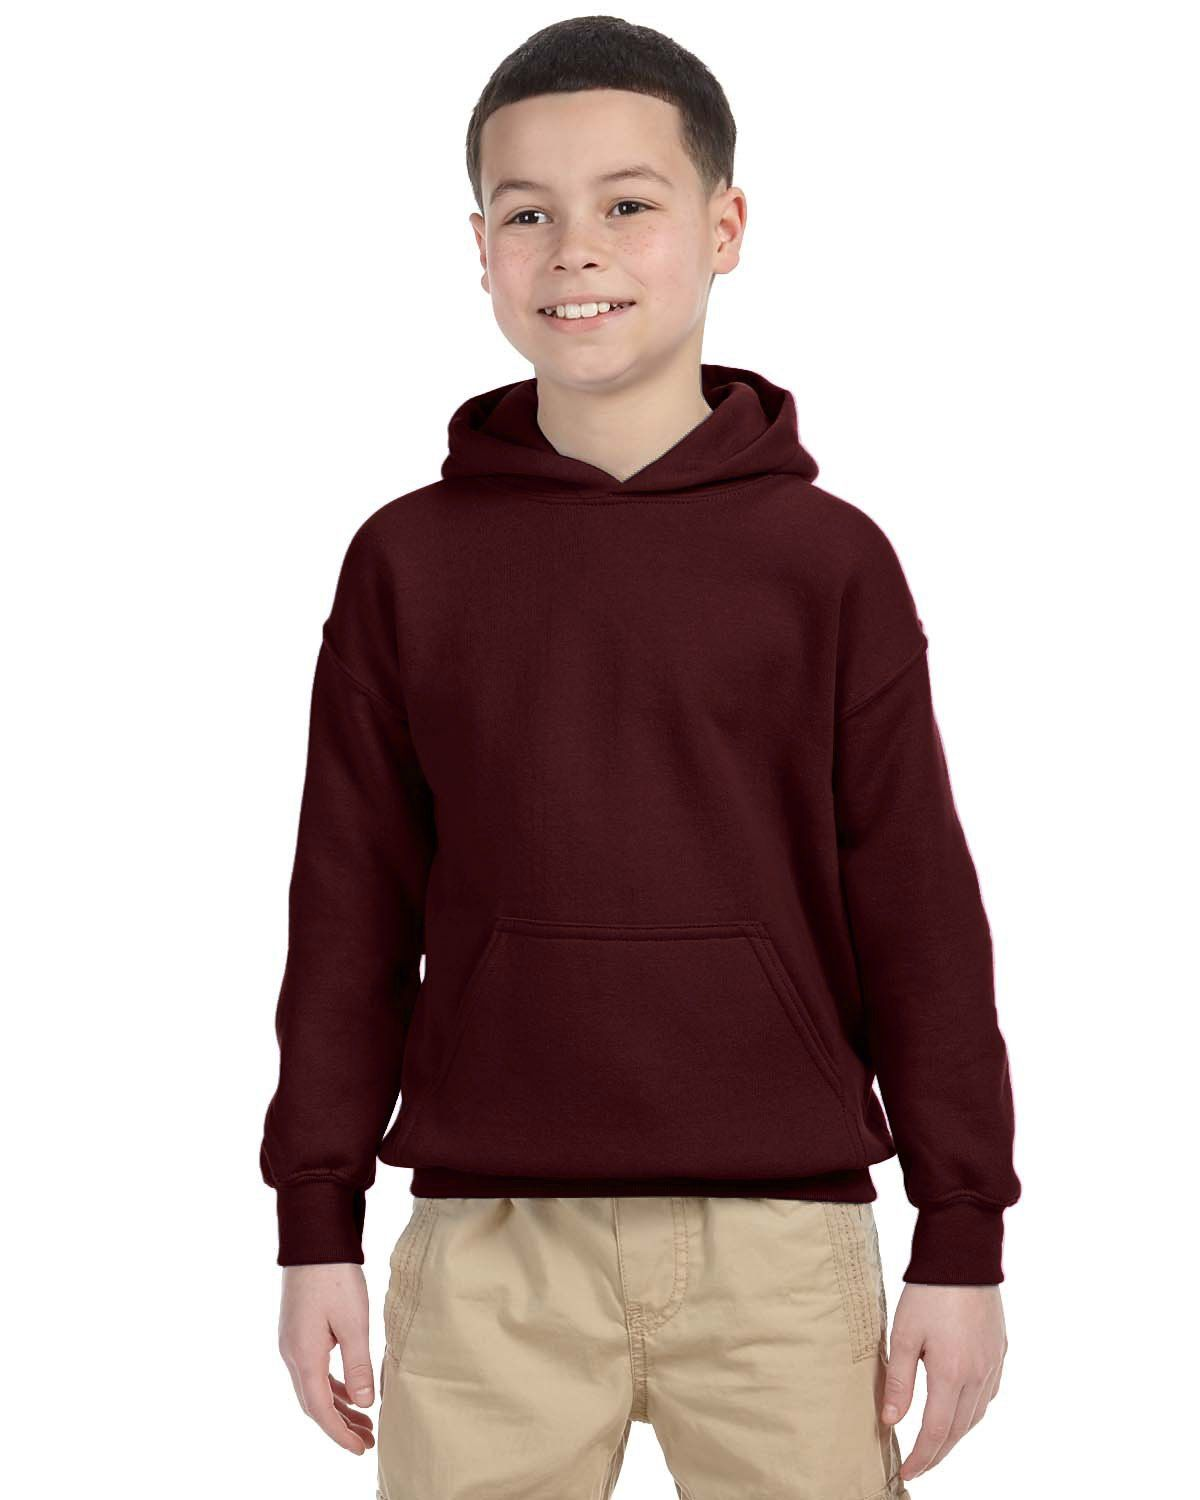 Indica Plateau Director of Operations Hoodie for Kids